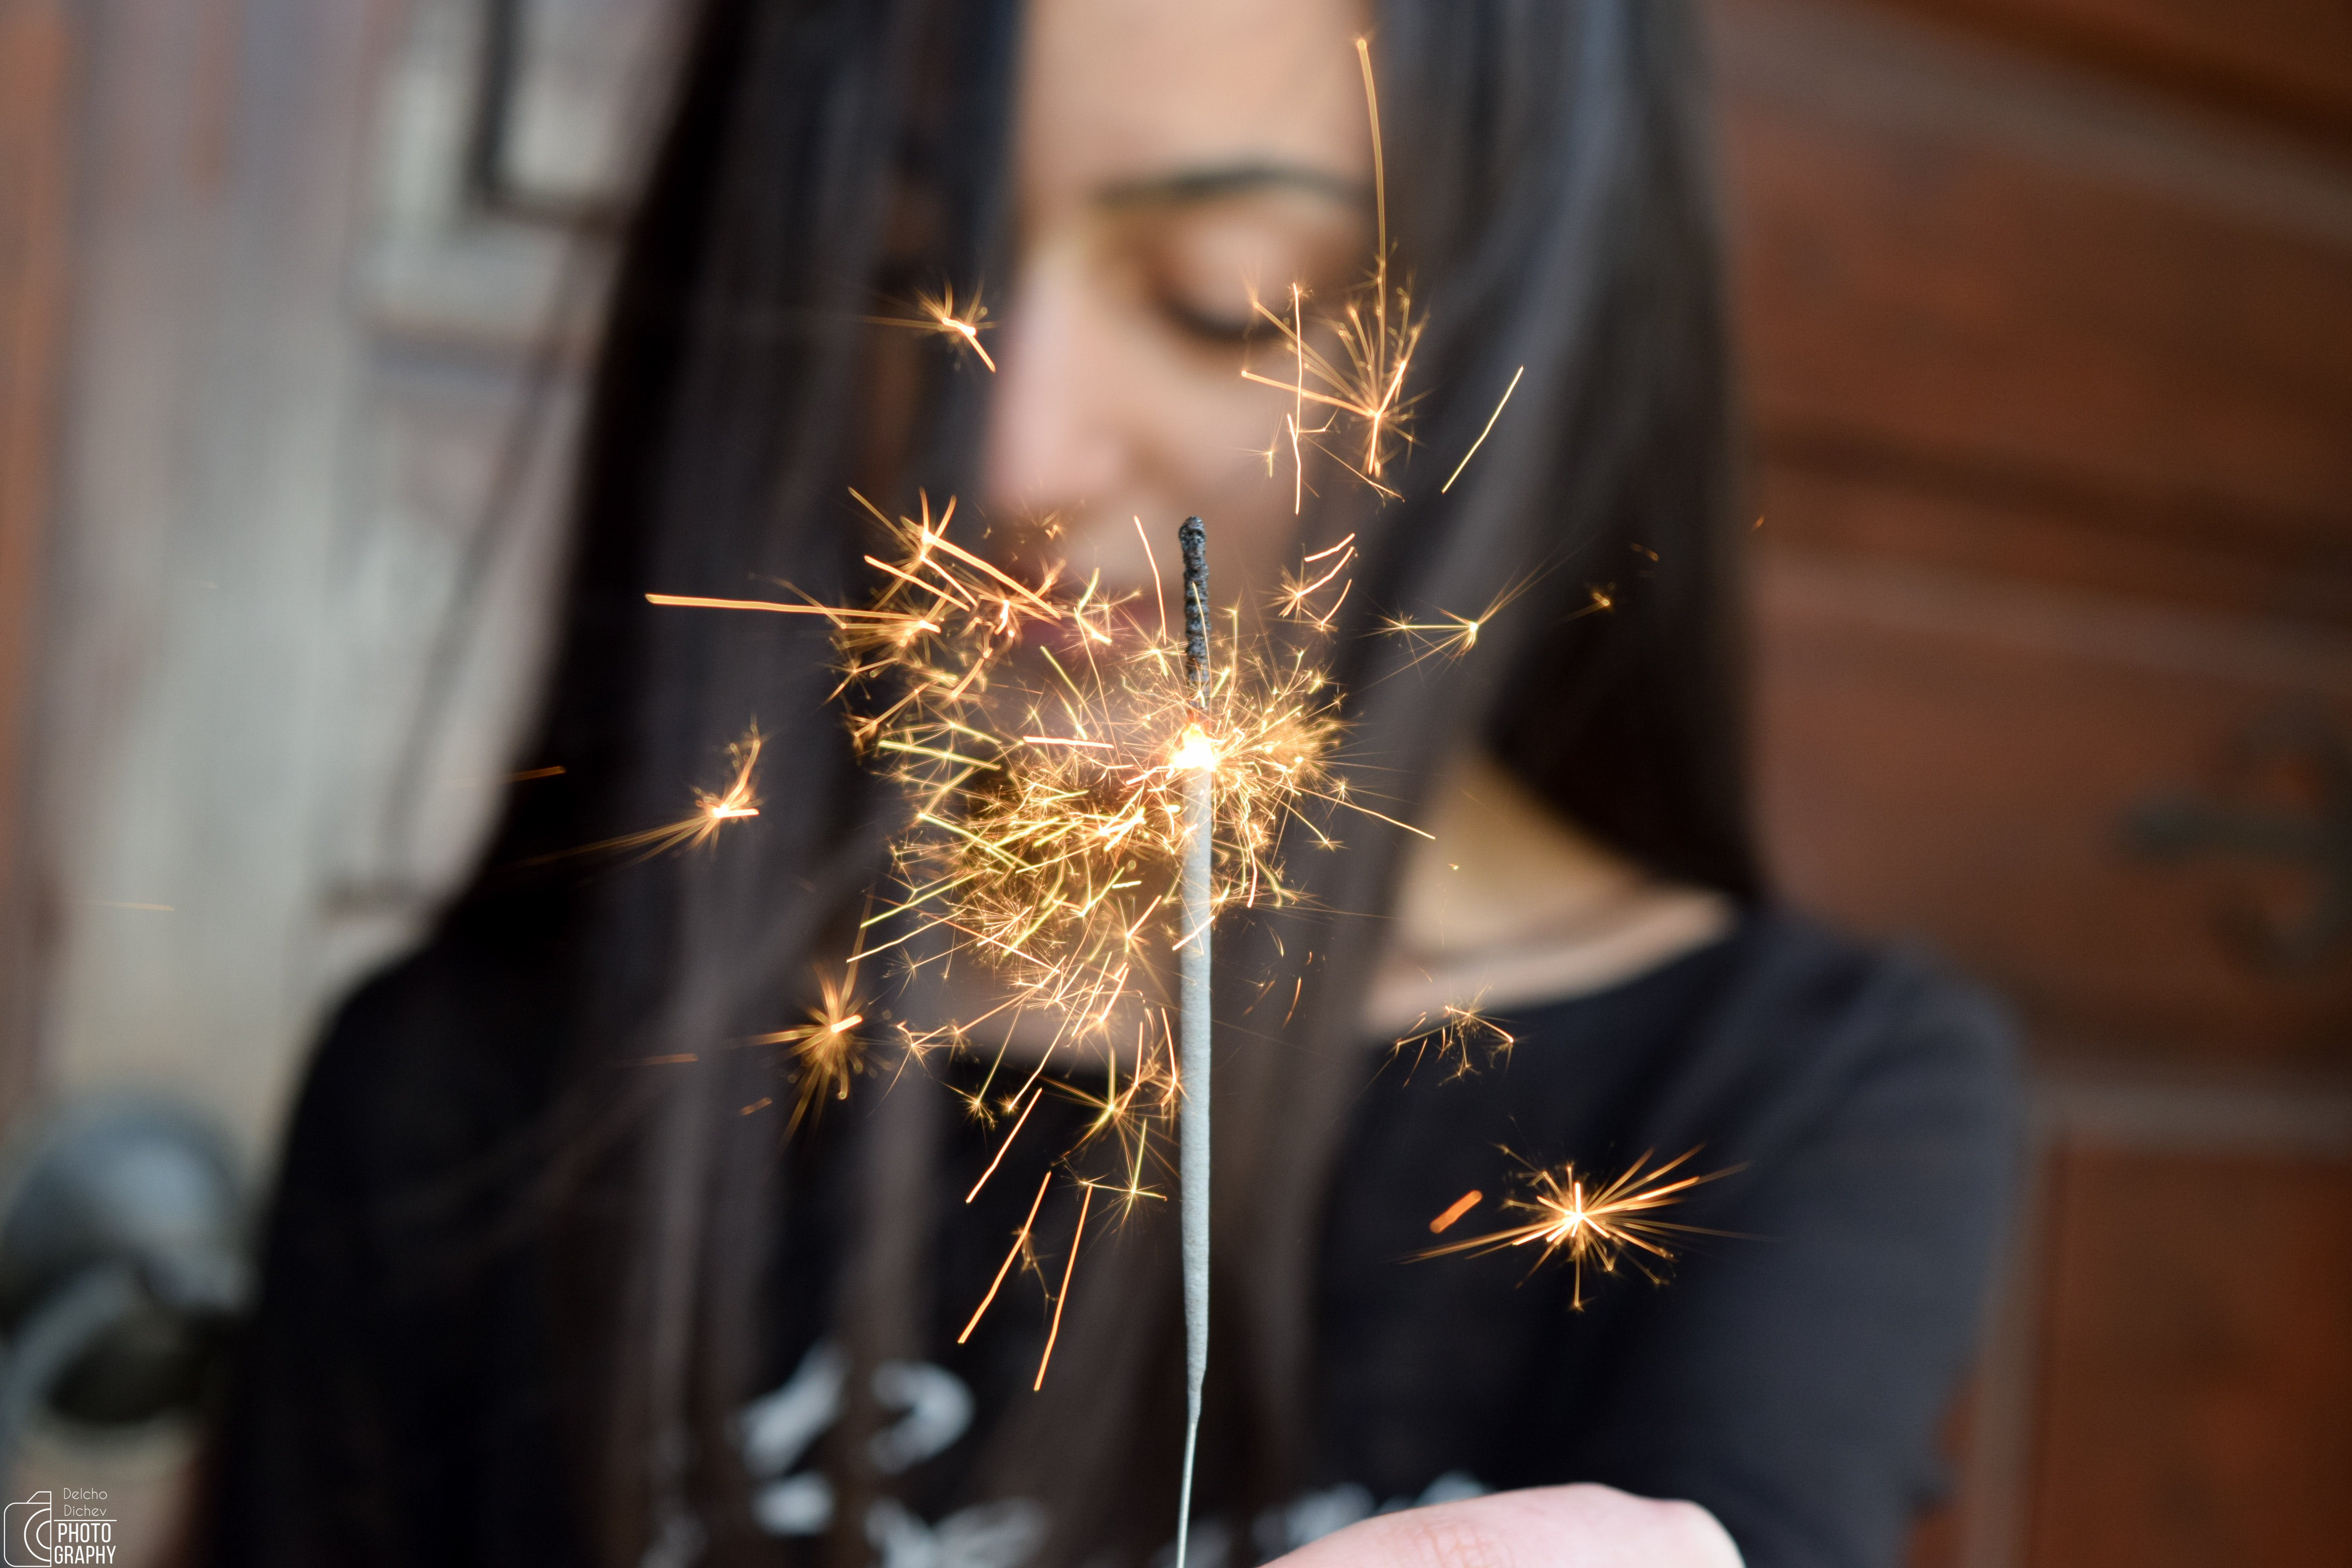 Selective Focus Photo Of Person Holding Sparkler